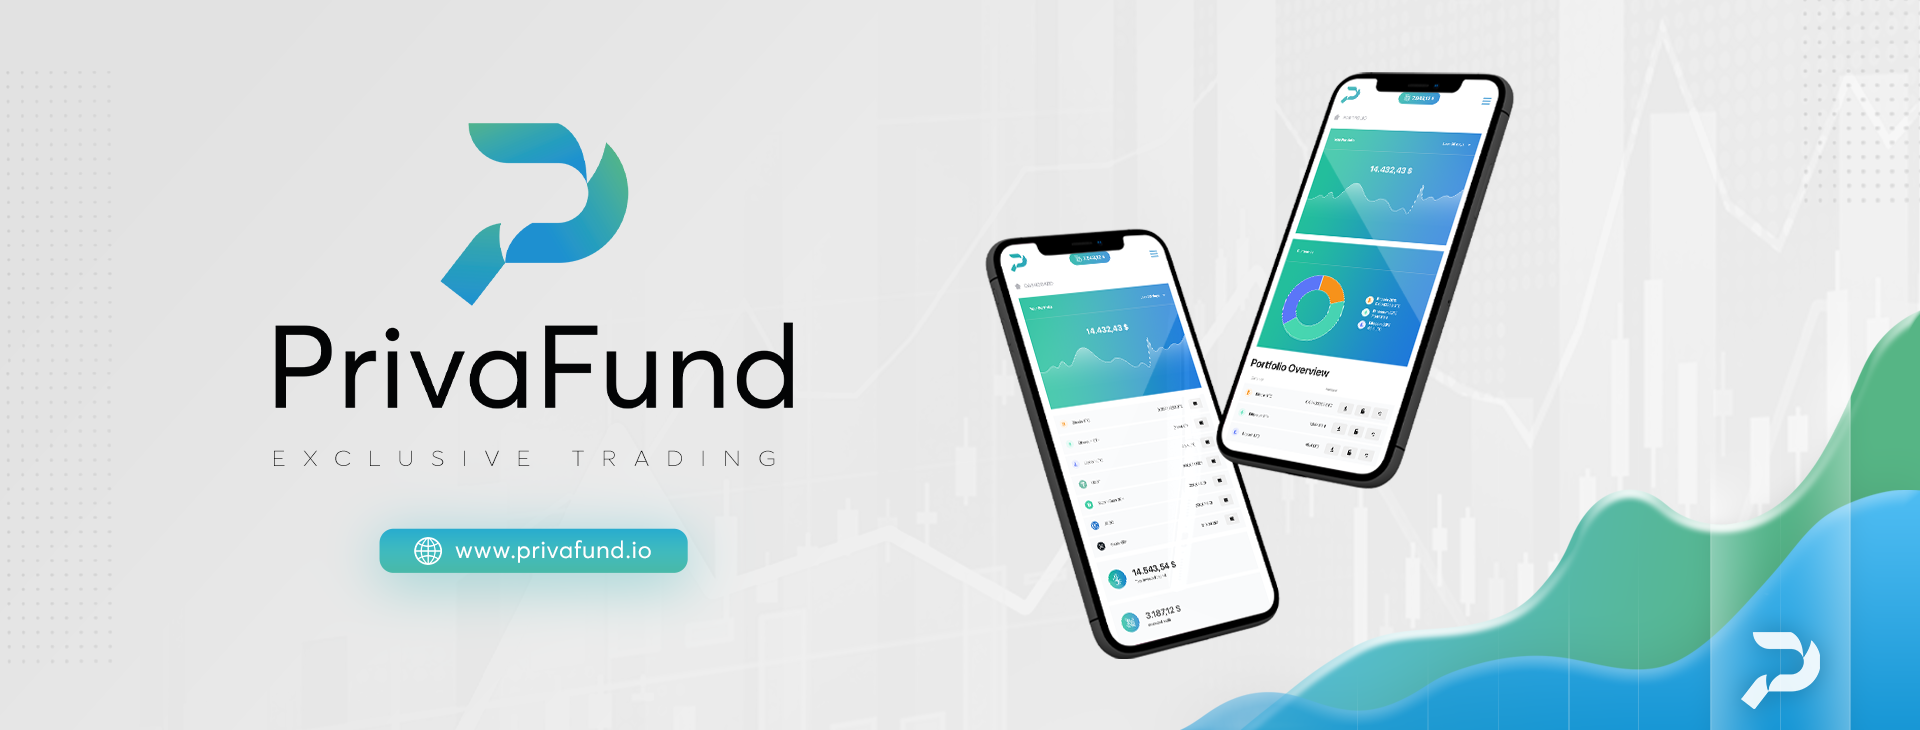 PrivaFund – A Credible, Lucrative Way to Build Crypto Wealth in 2021 22